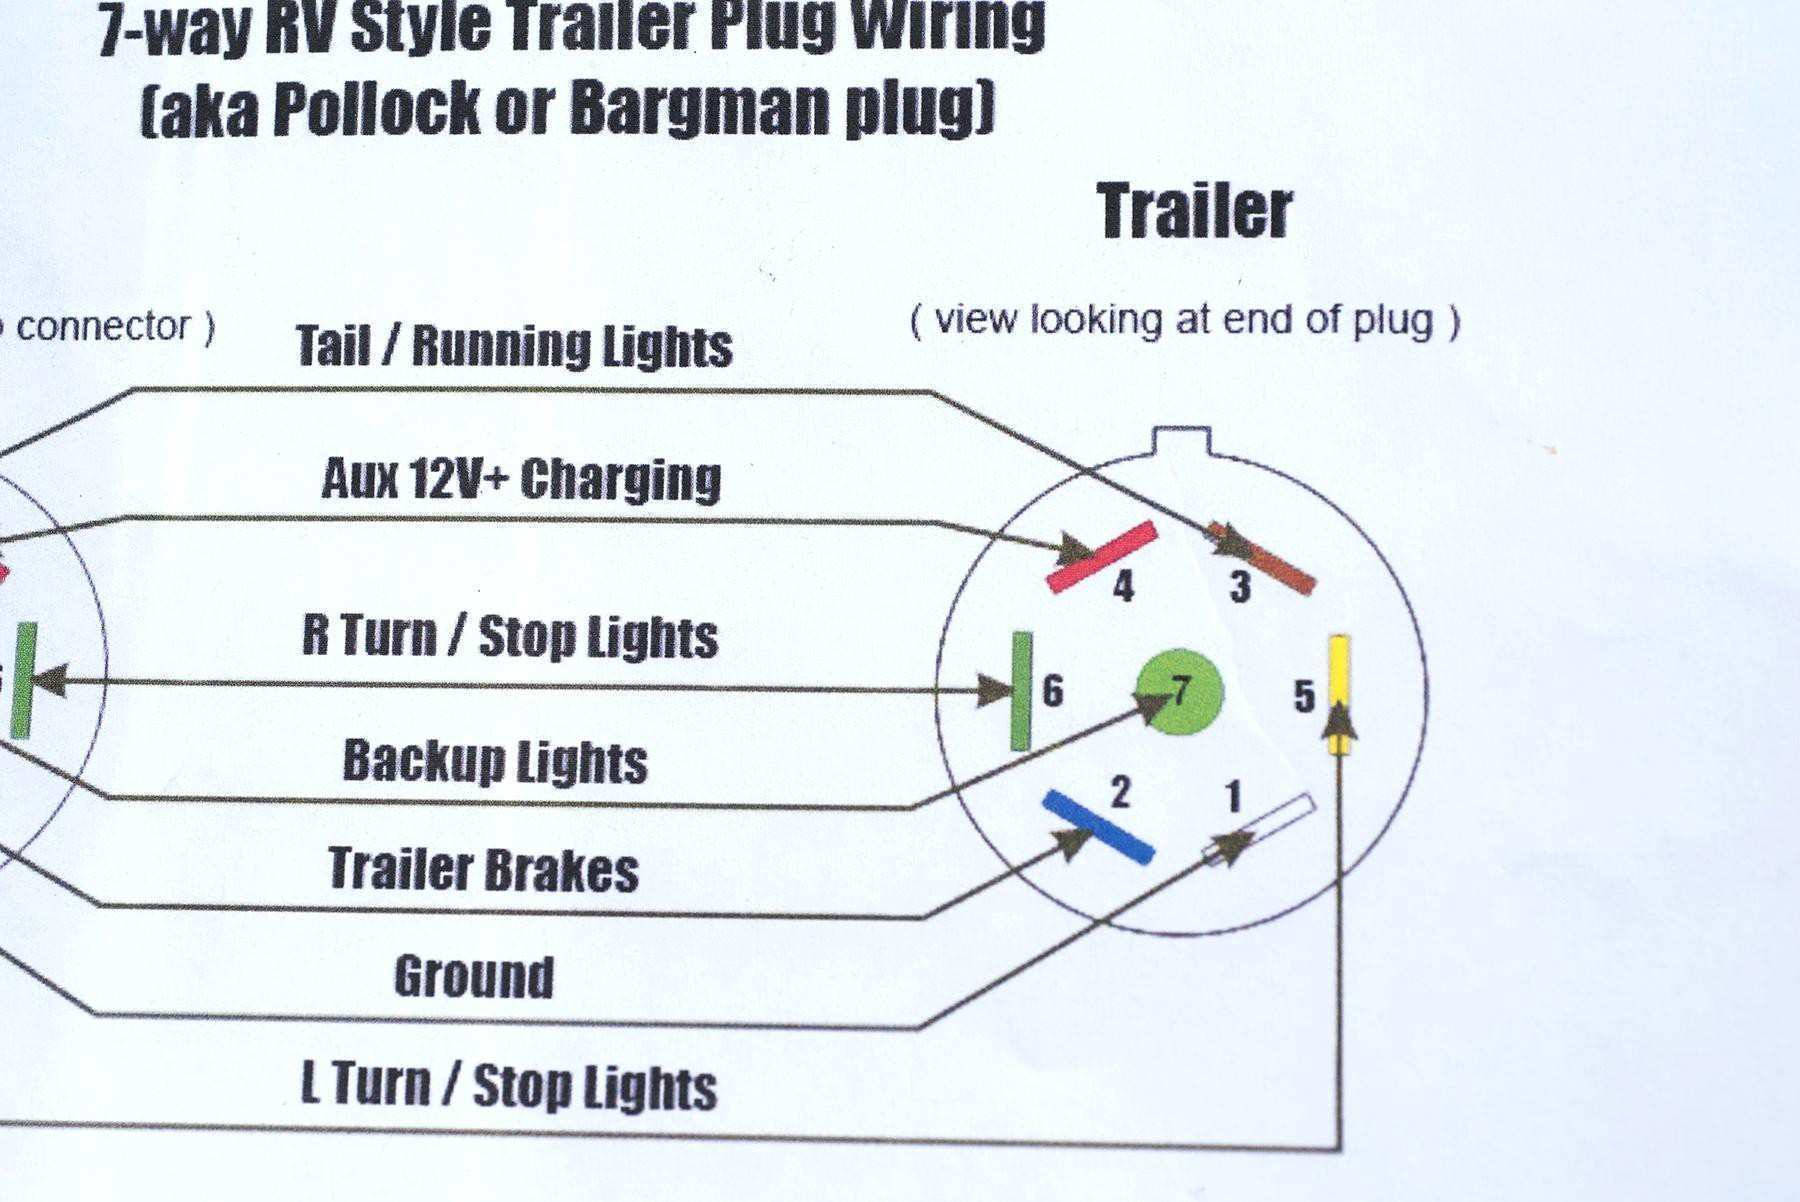 Land Rover Trailer Wiring Color Code | Wiring Diagram - Land Rover Trailer Wiring Diagram